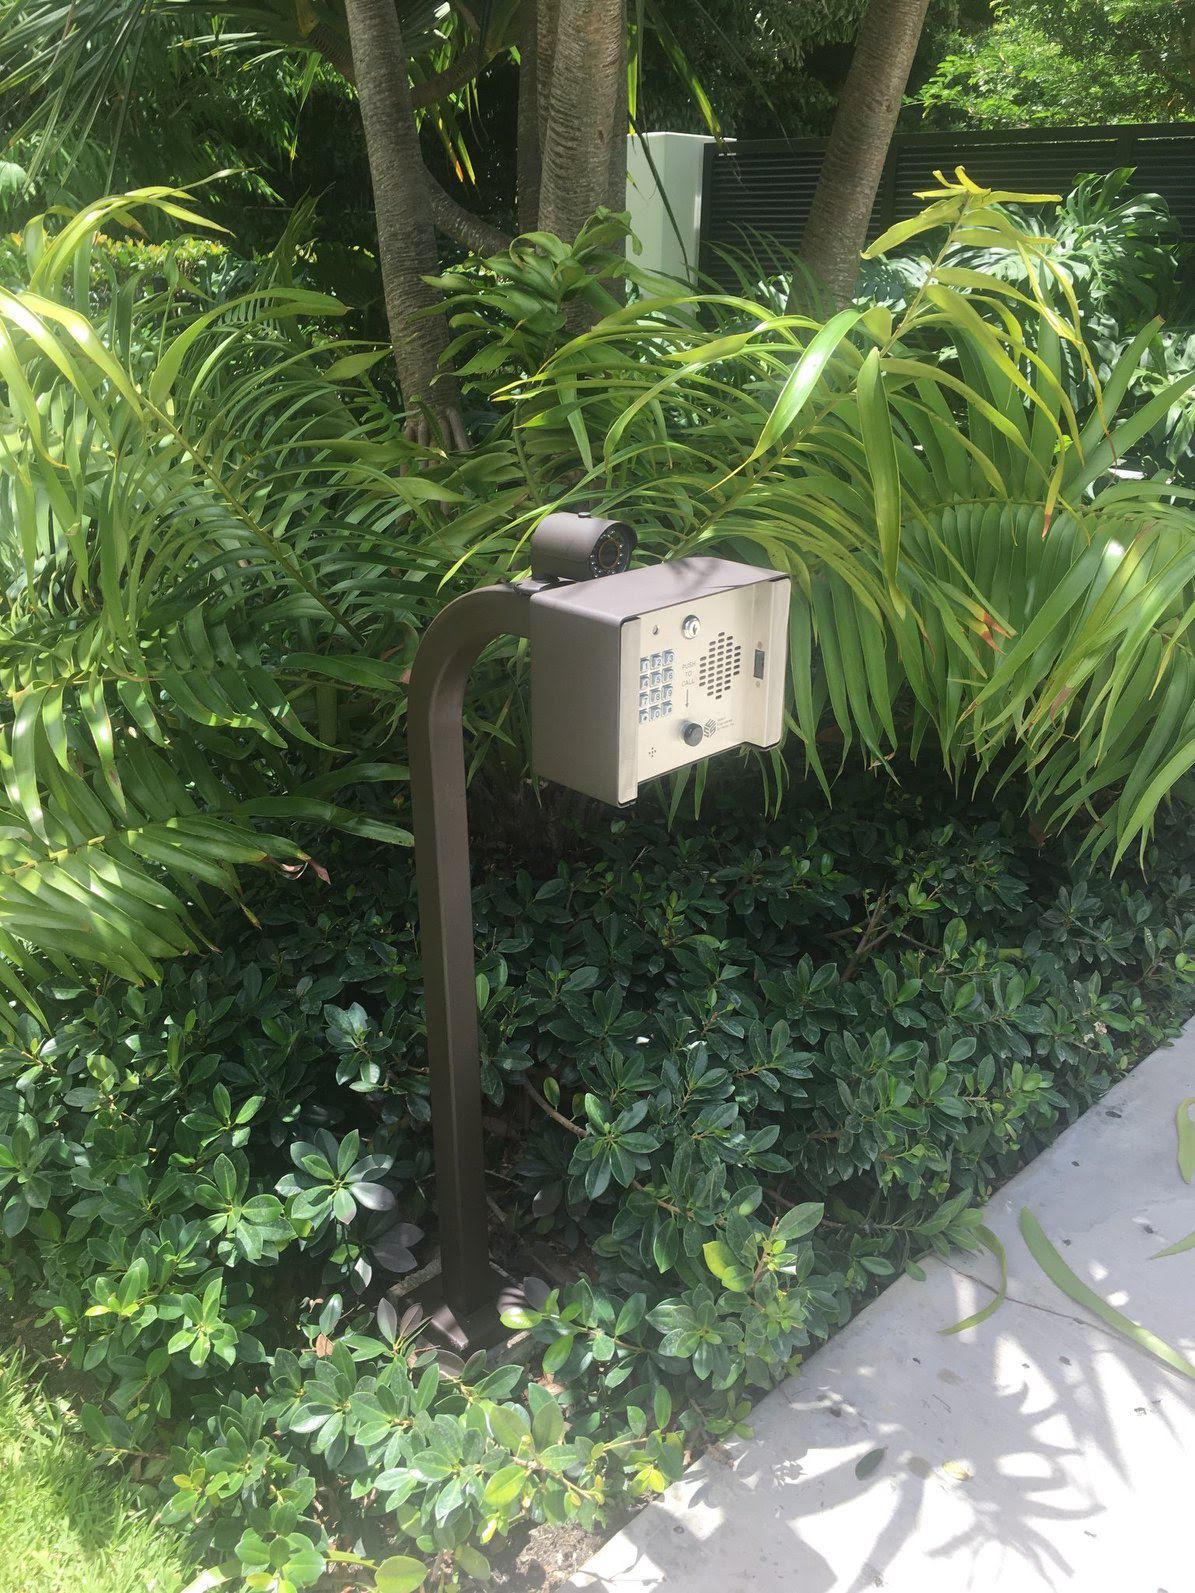 Access Control Systems Of  South FL image 2